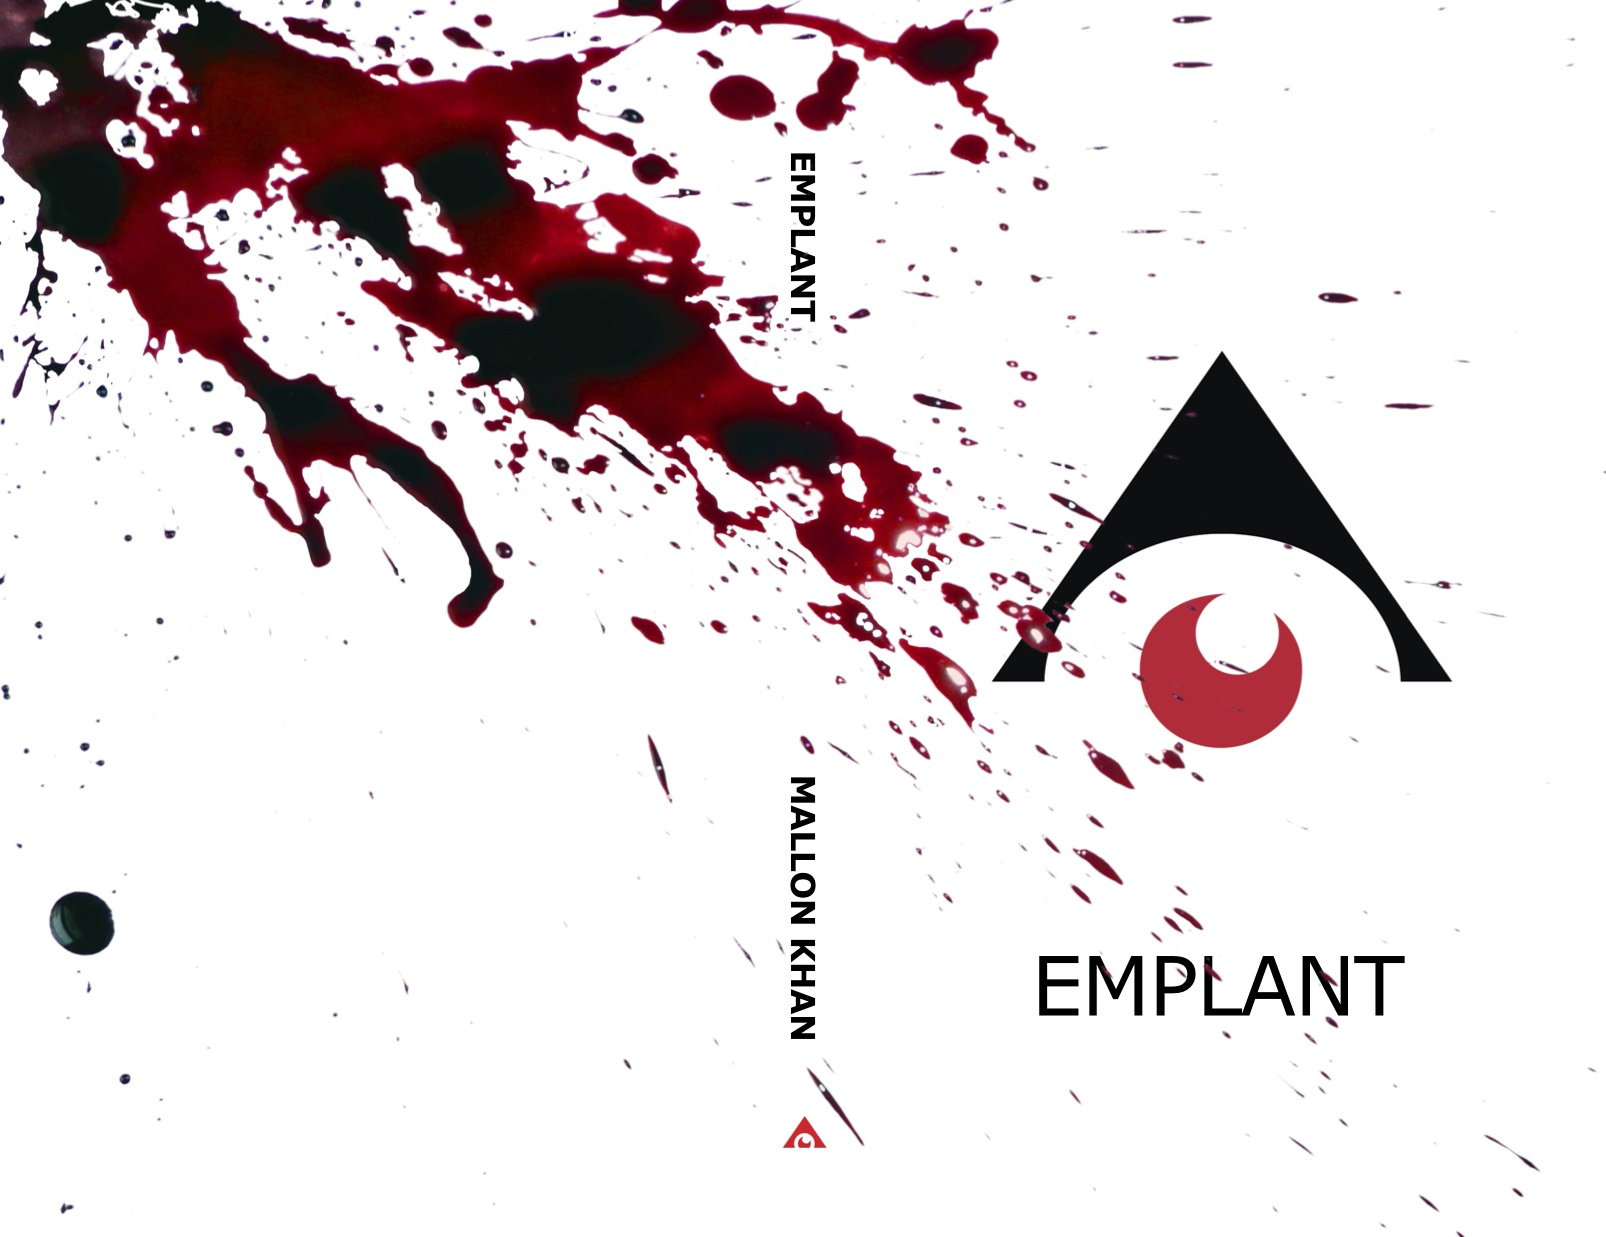 Emplant-2013-cover